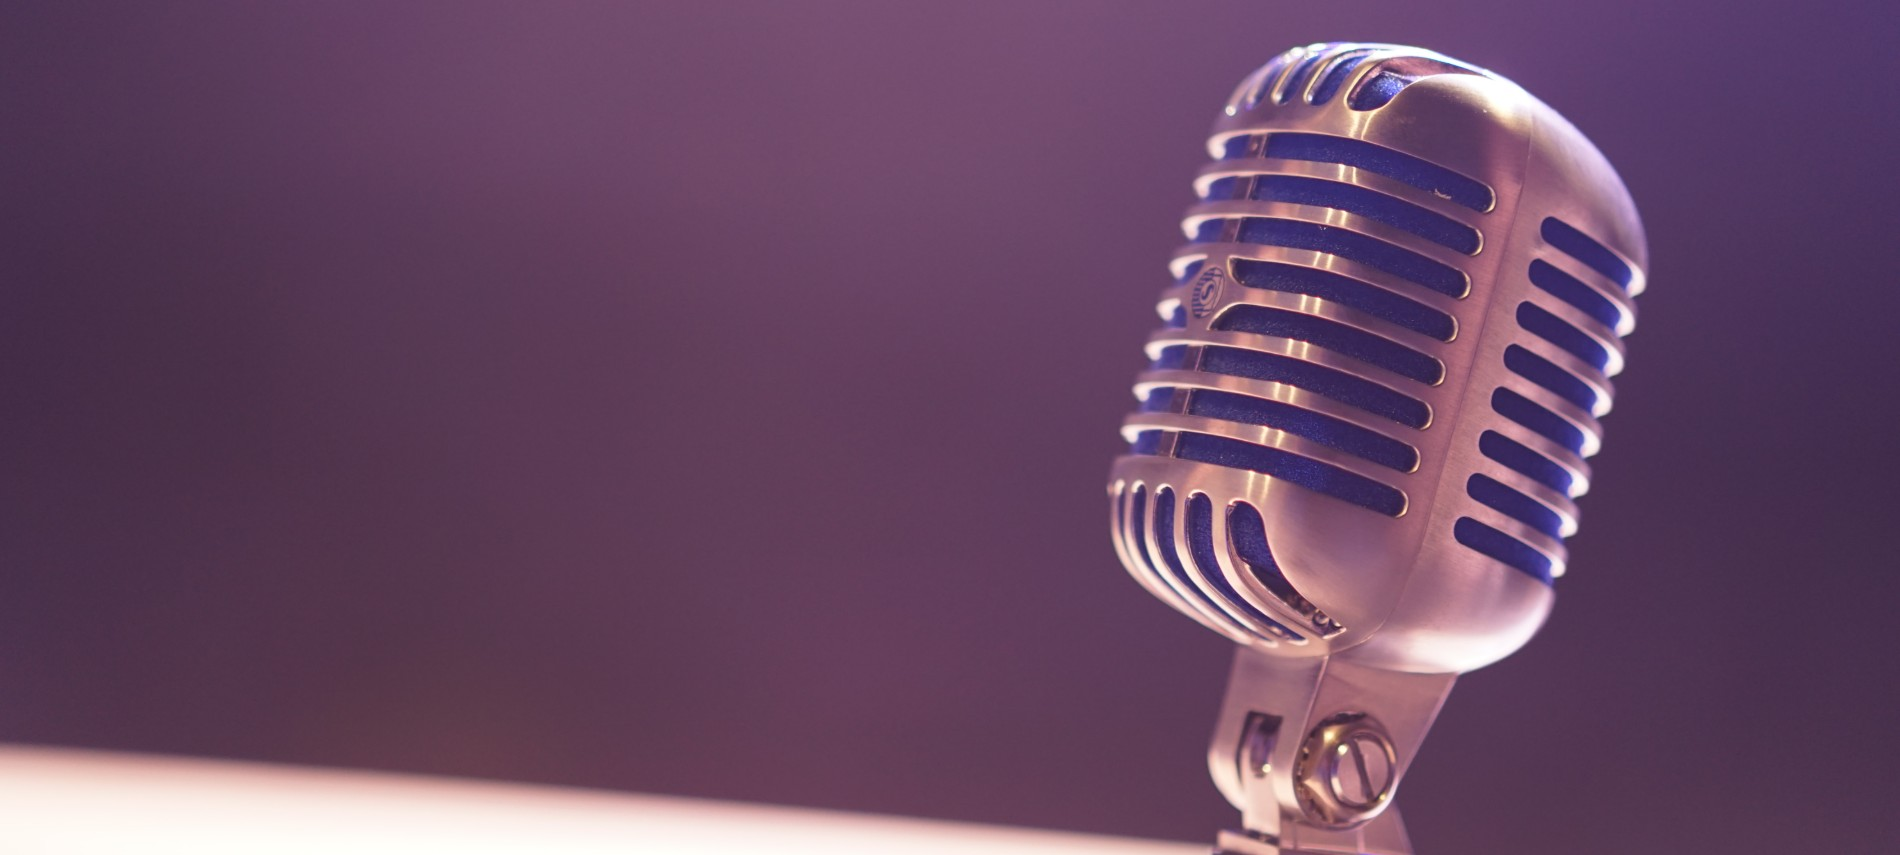 A single, silver vintage microphone against a dimly lit black background